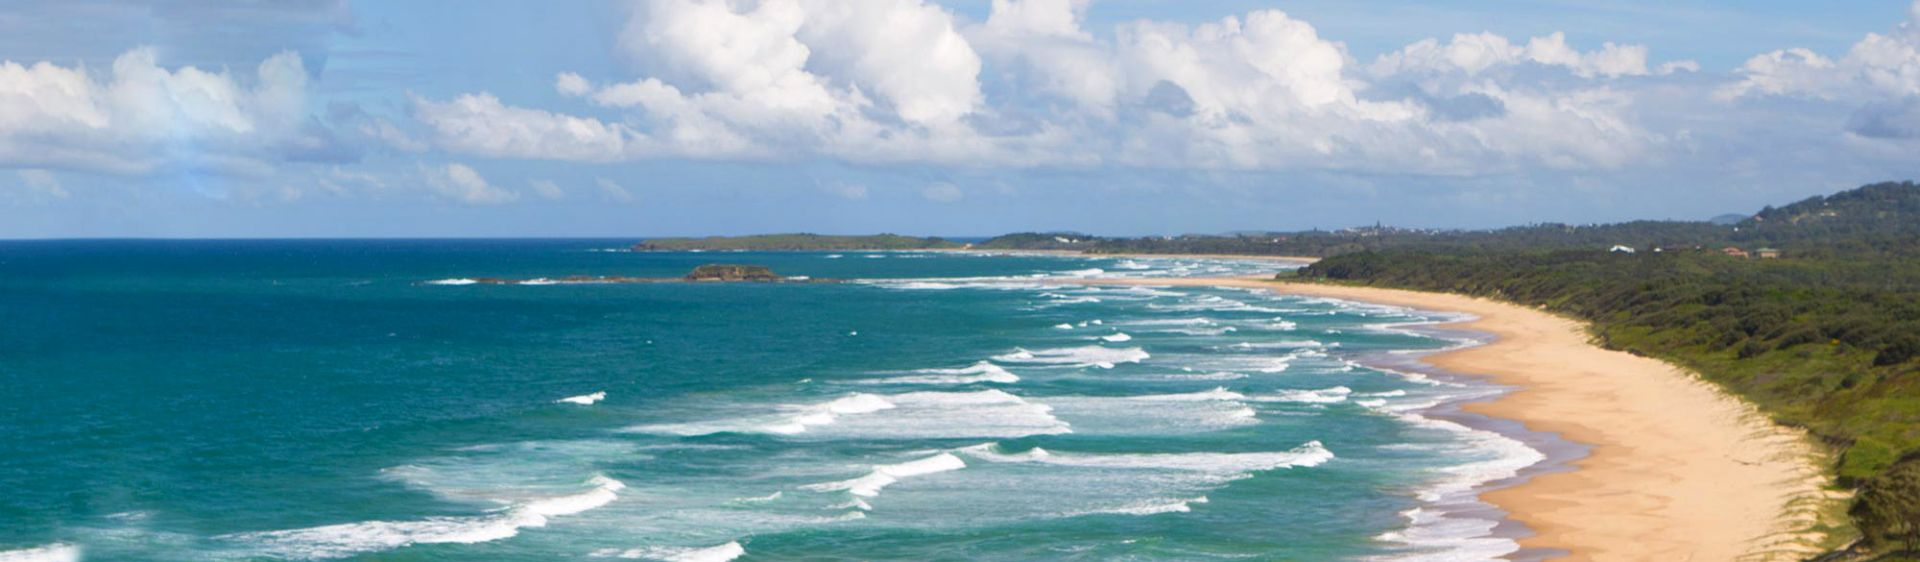 The view from Woolgoolga Headland looking across Coffs Coast Regional Park, NSW, Australia